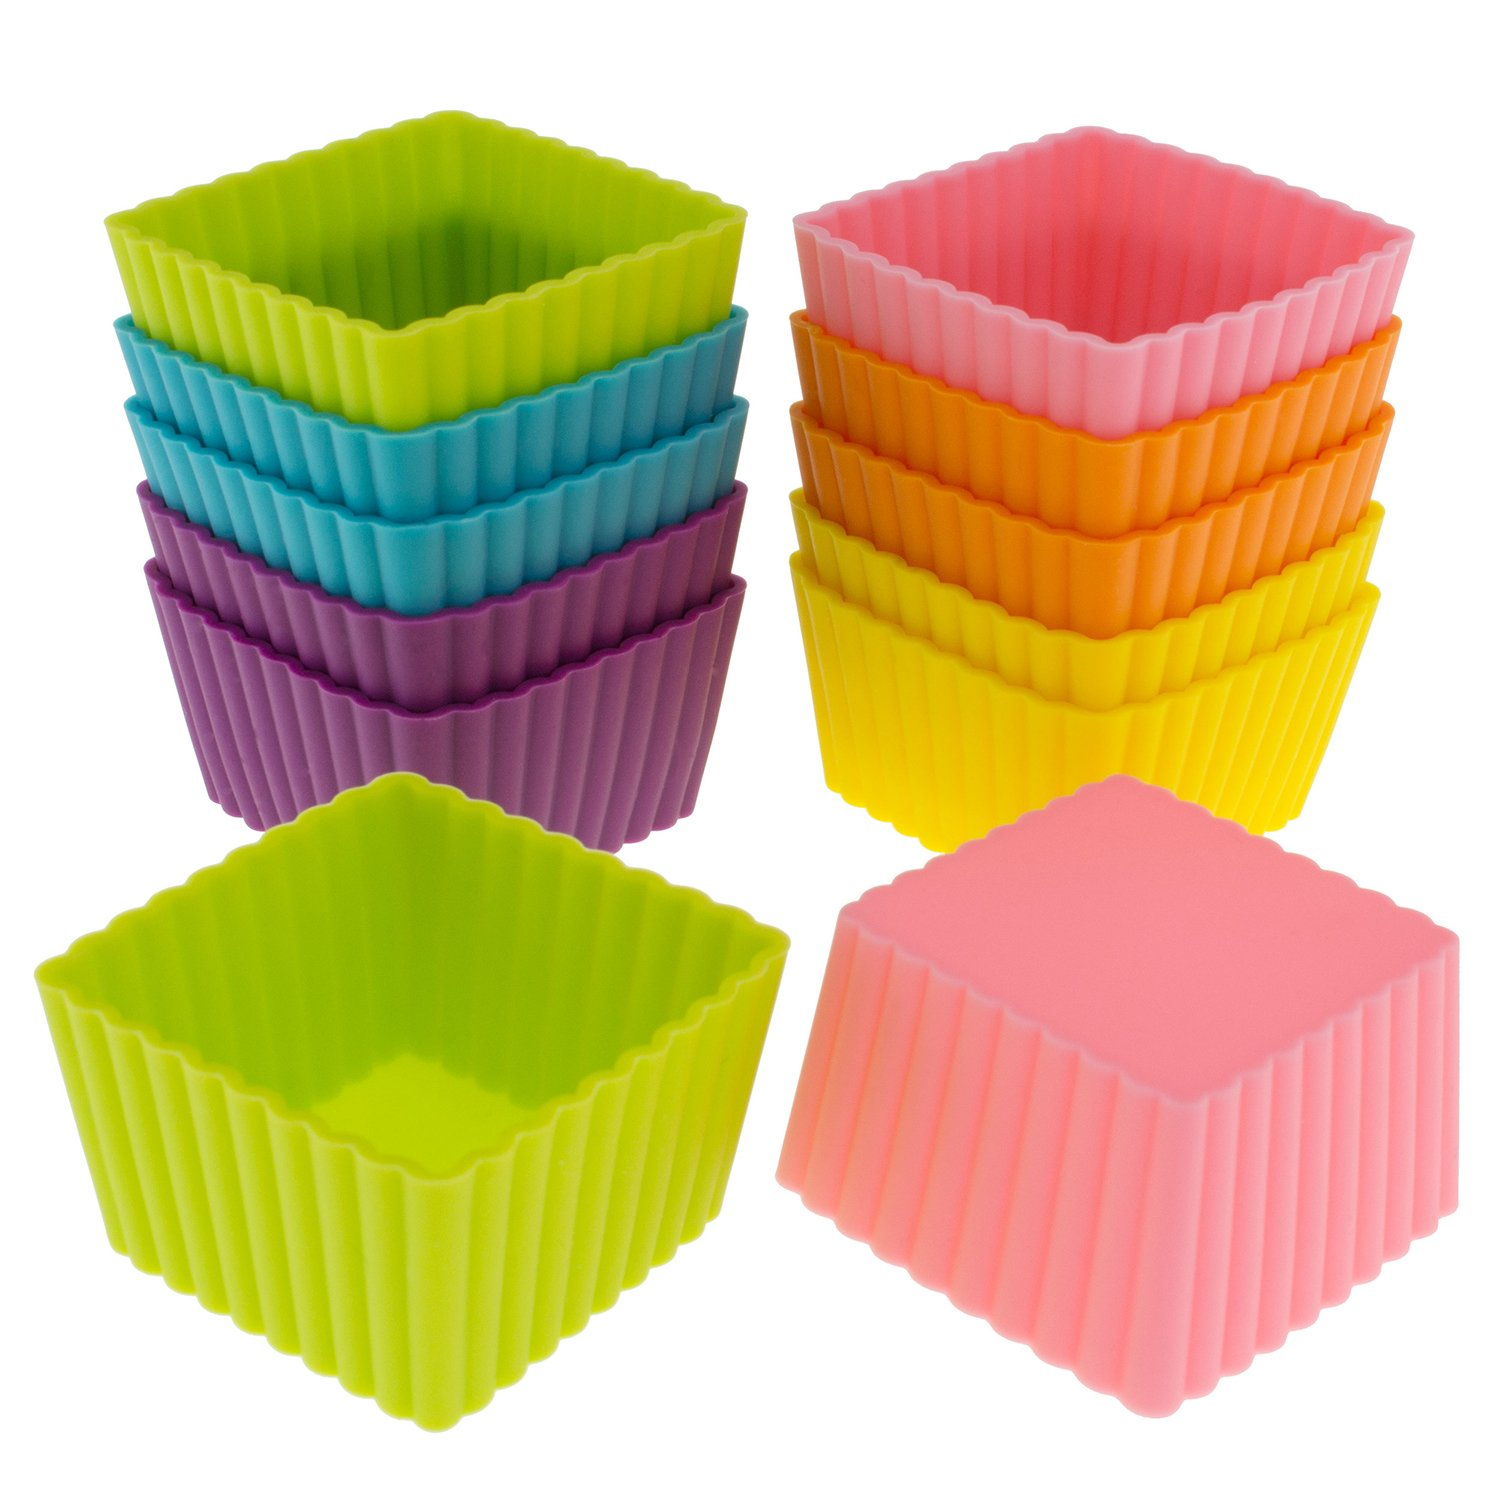 Freshware CB-301SC 12-Pack Silicone Mini Square Reusable Cupcake and Muffin Baking Cup, Six Vibrant Colors